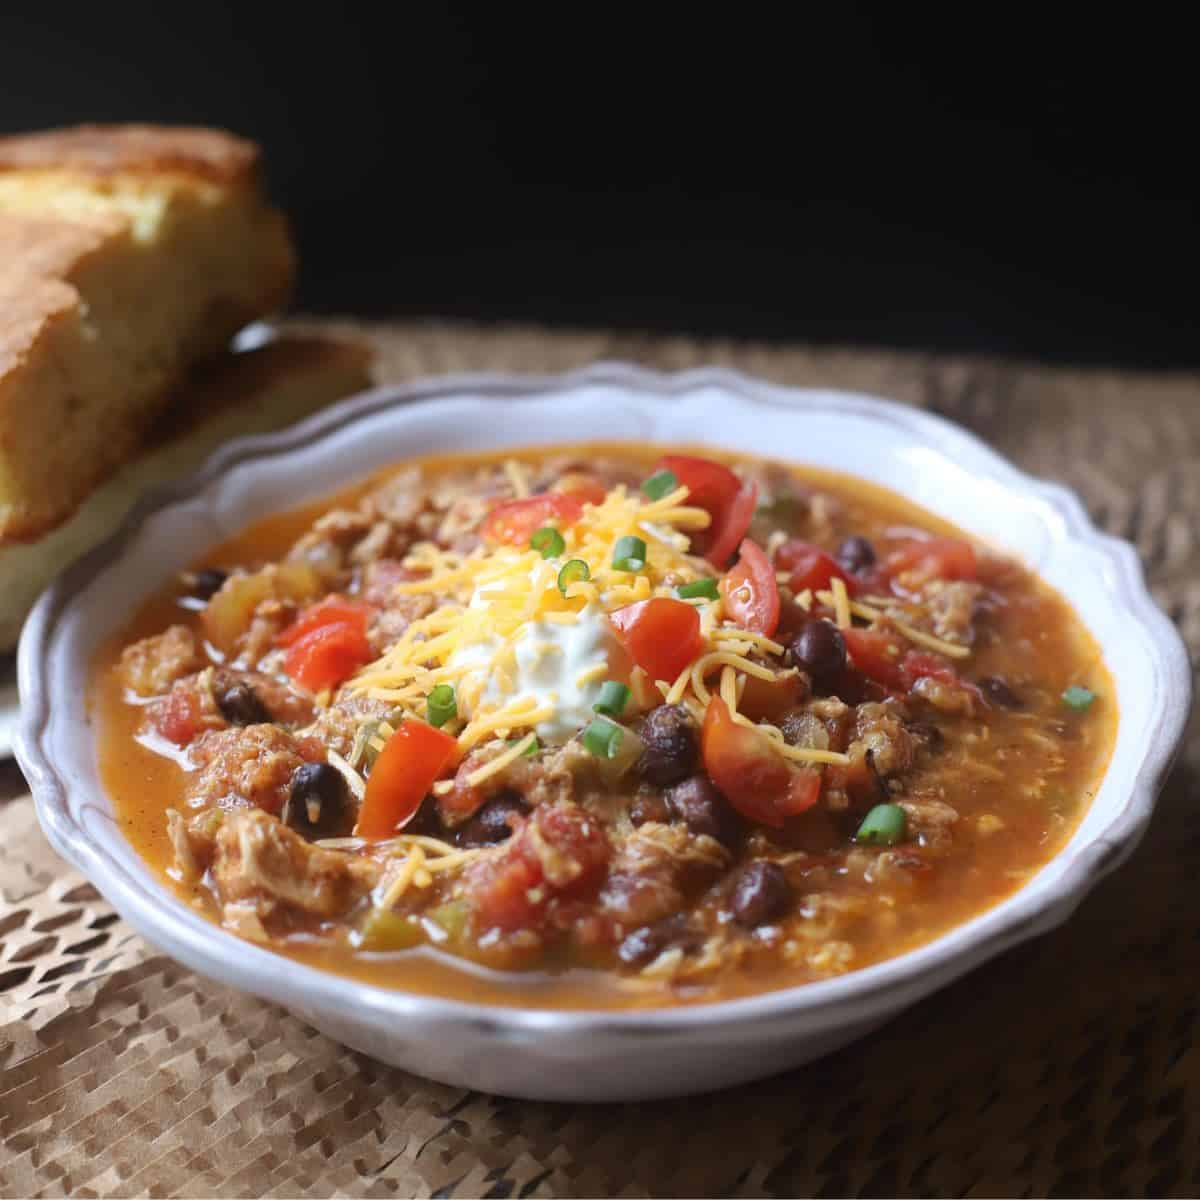 Hearty Chicken Chili with a Twist in a white bowl ready to serve with a side of cornbread